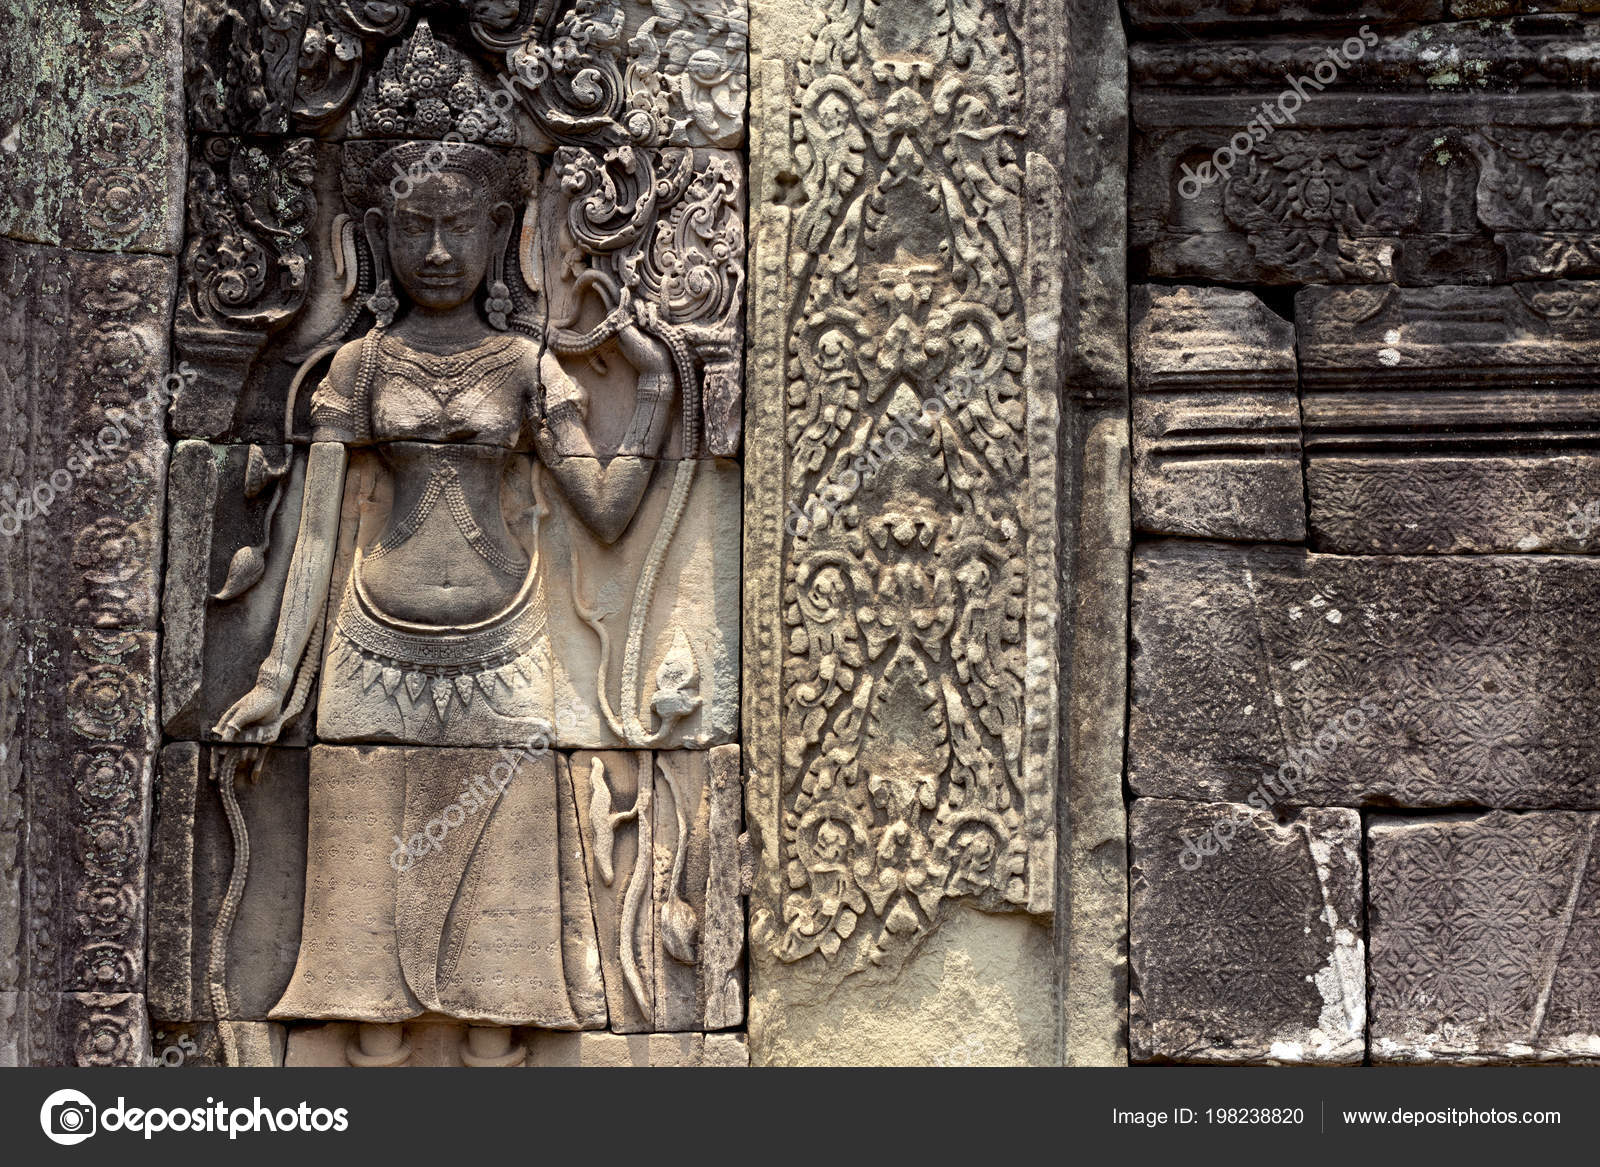 Carved stone bas relief angkor wat complex temple siem reap